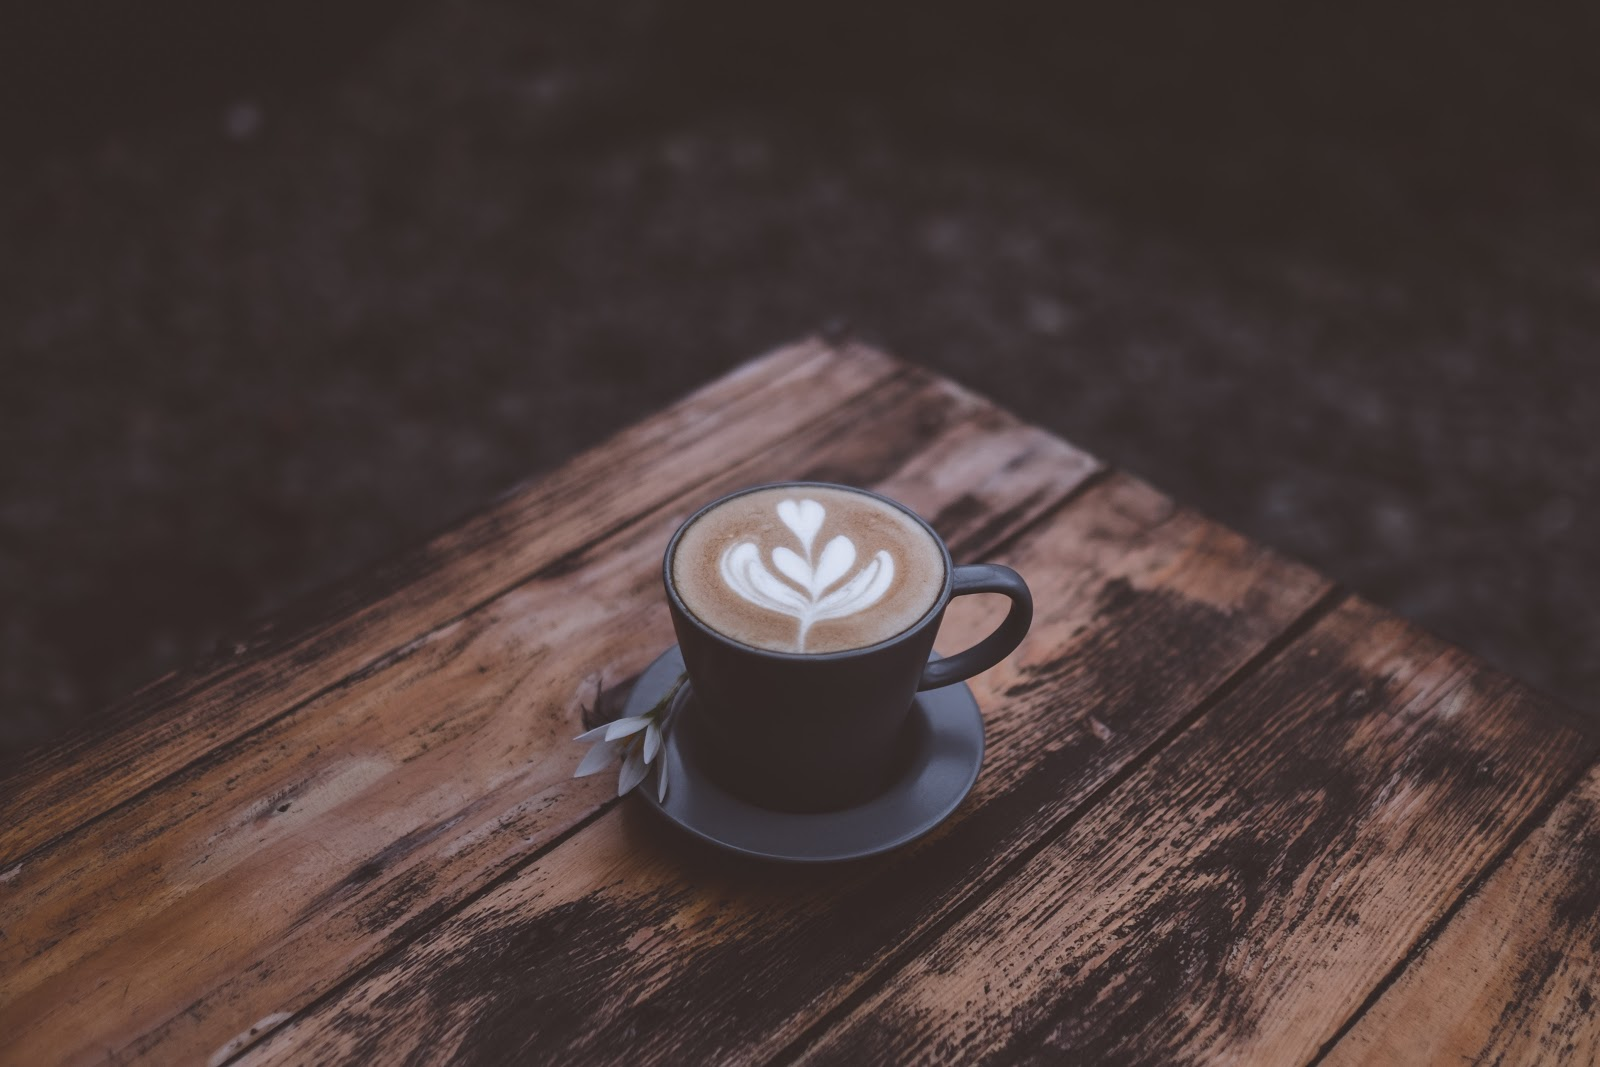 a cup of latte placed on a wooden table